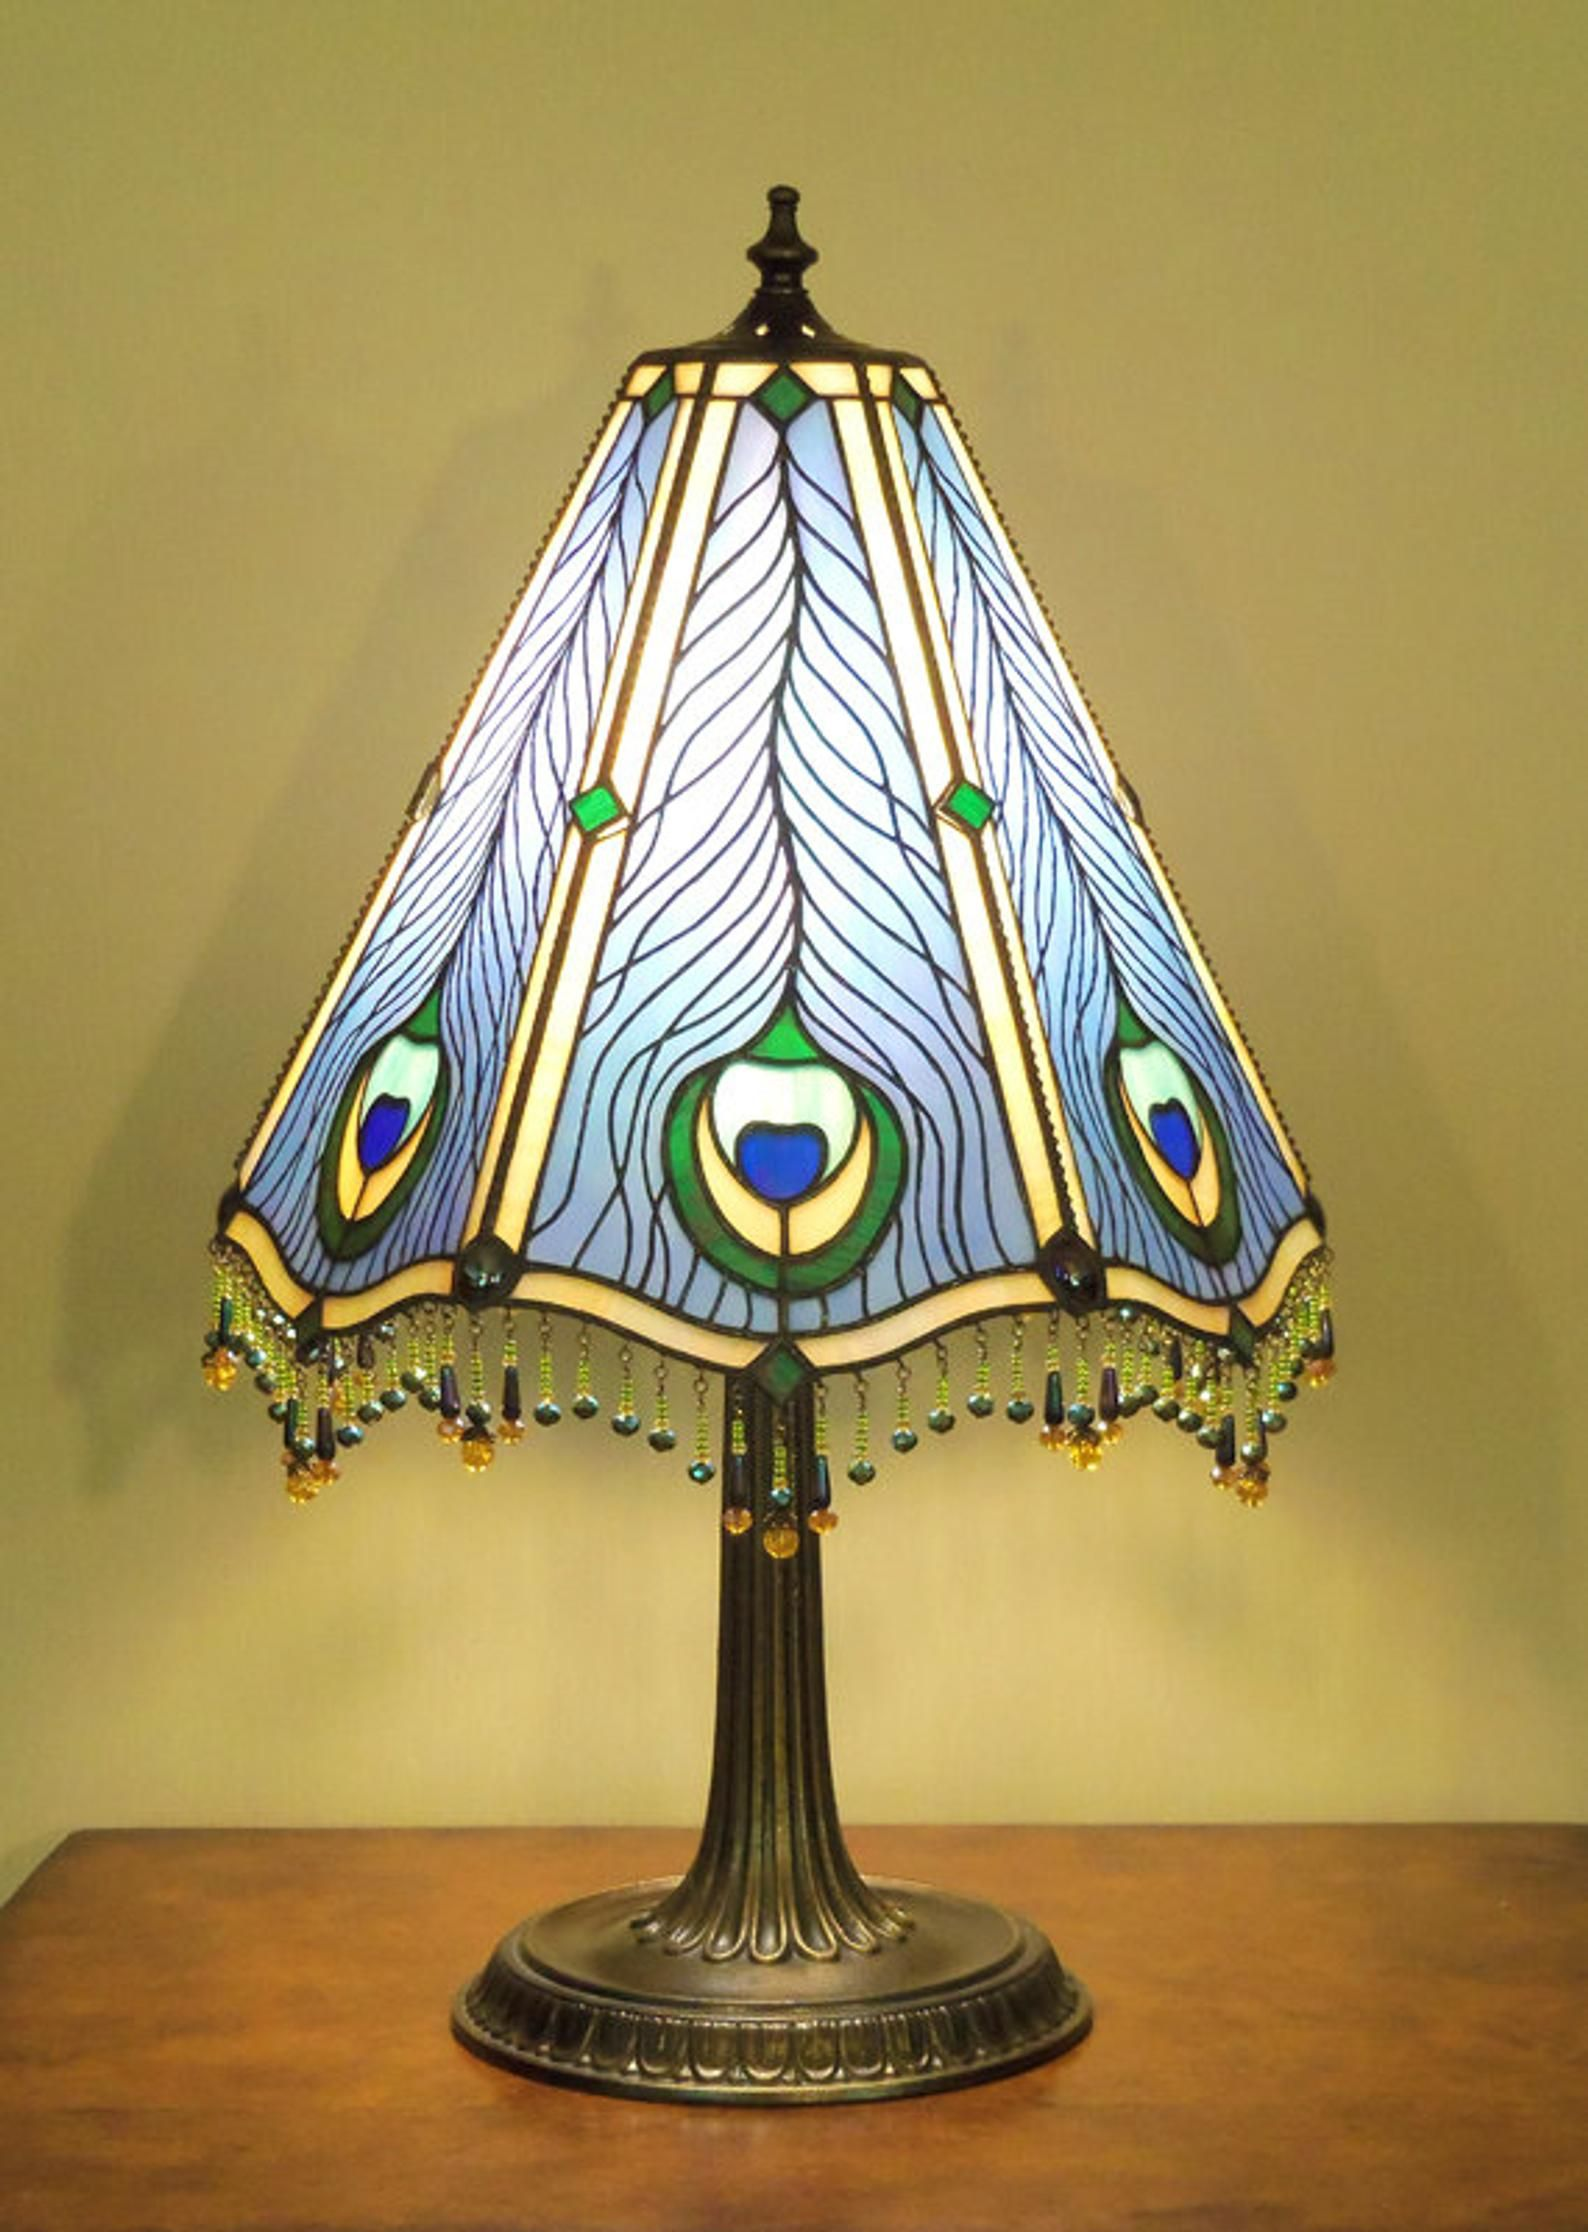 Stained Glass Table Lamp Peacock In 2020 Stained Glass Table Lamps Glass Table Lamp Table Lamp